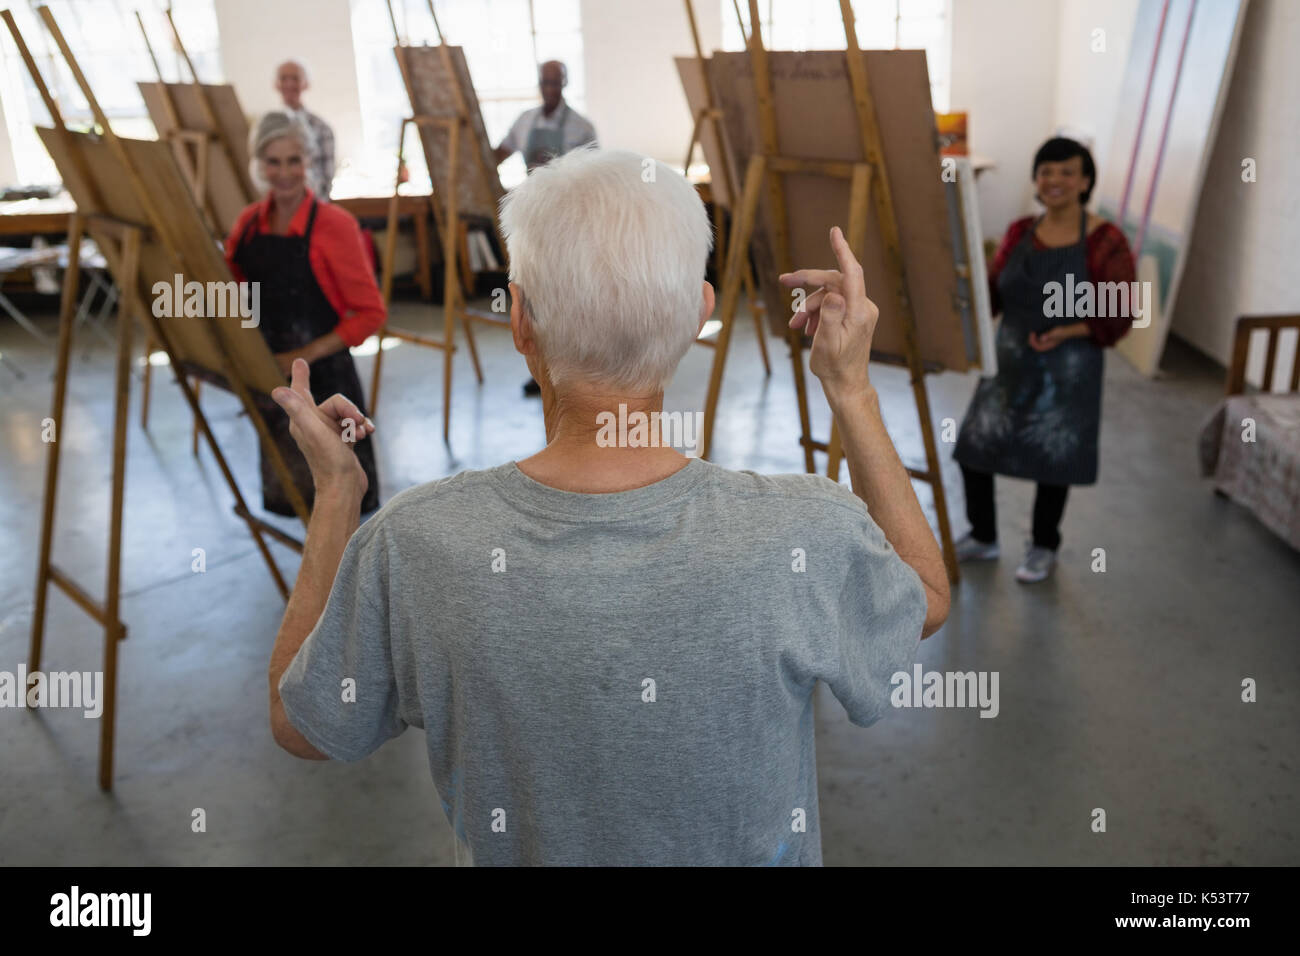 High angel view of man gesturing while standing against friends in art class - Stock Image